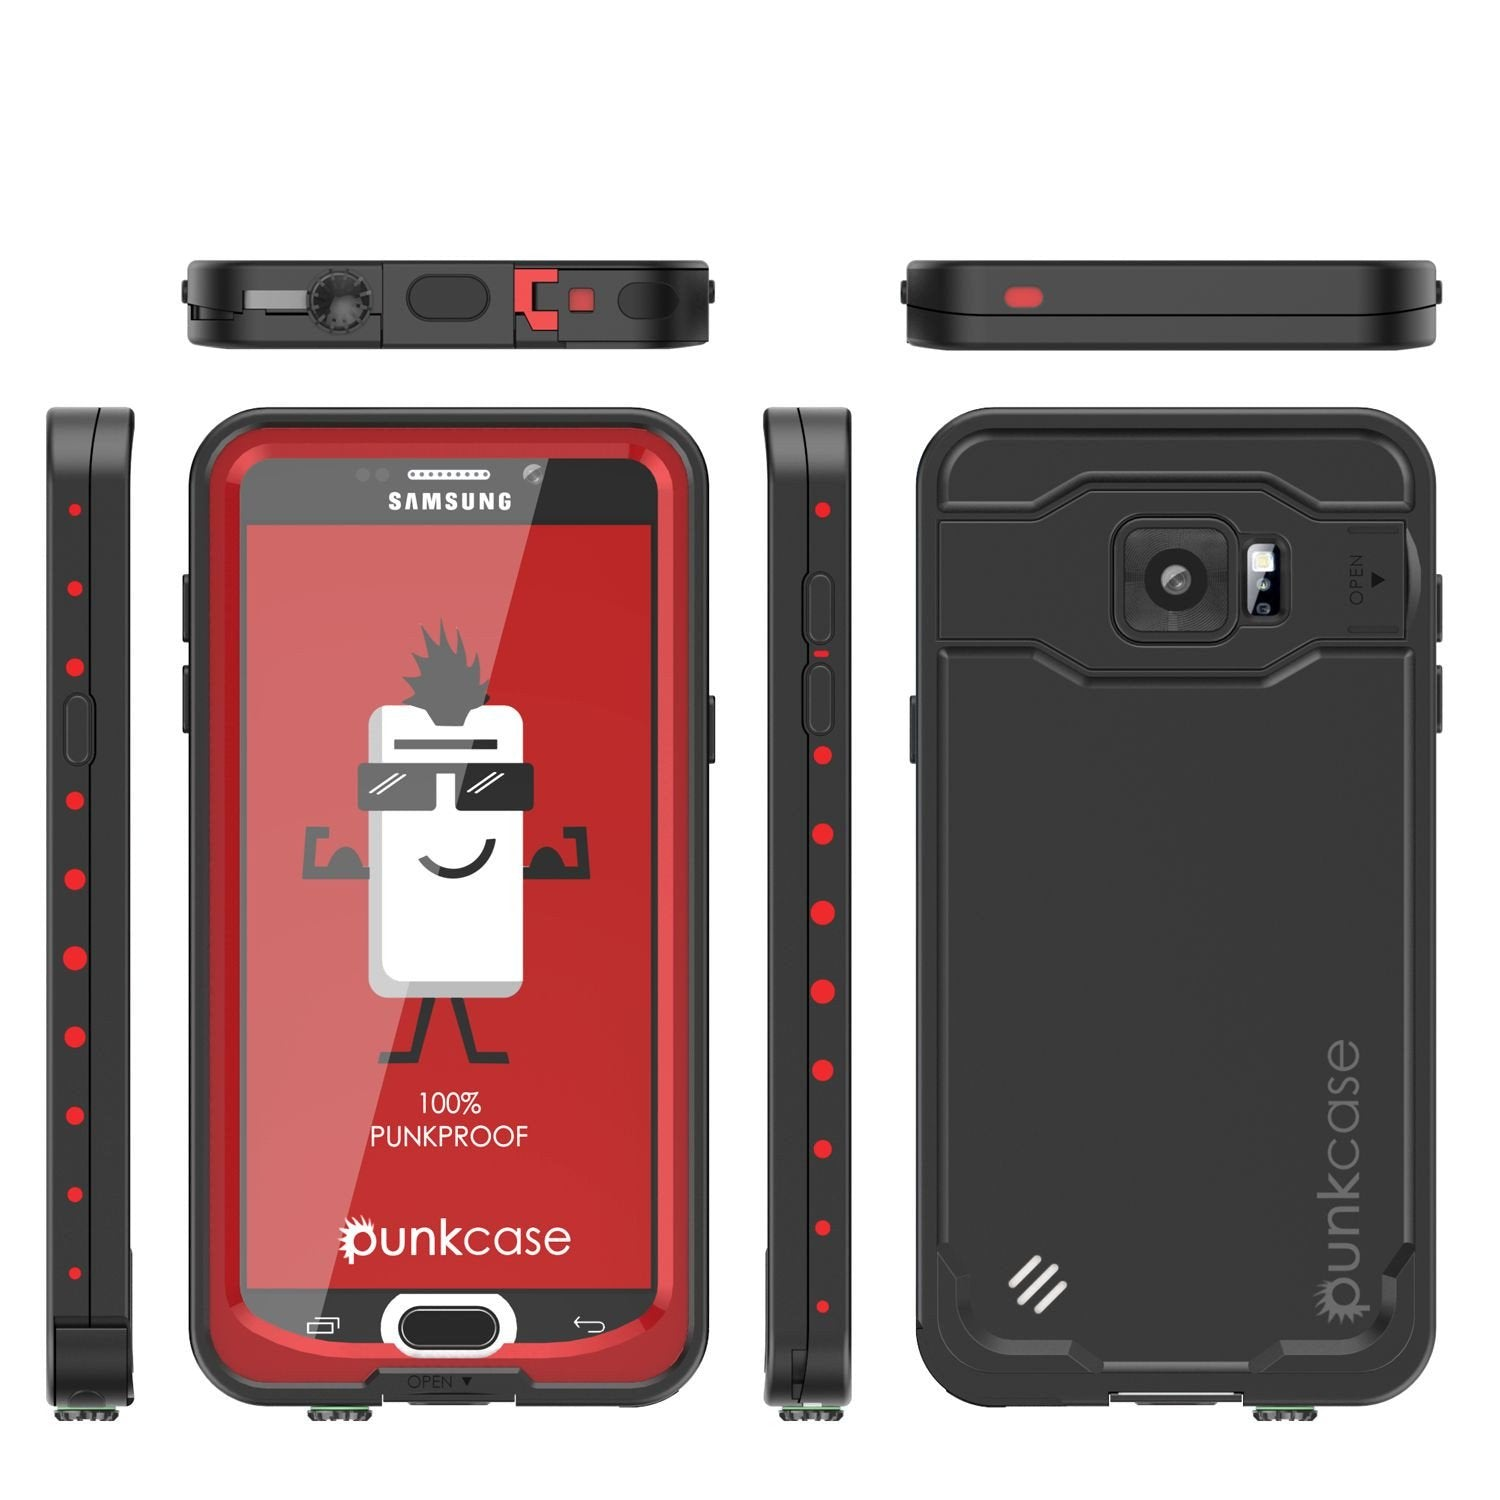 Galaxy Note 5 Waterproof Case, Punkcase StudStar Red Water/Shock/Dirt/Snow Proof | Lifetime Warranty - PunkCase NZ